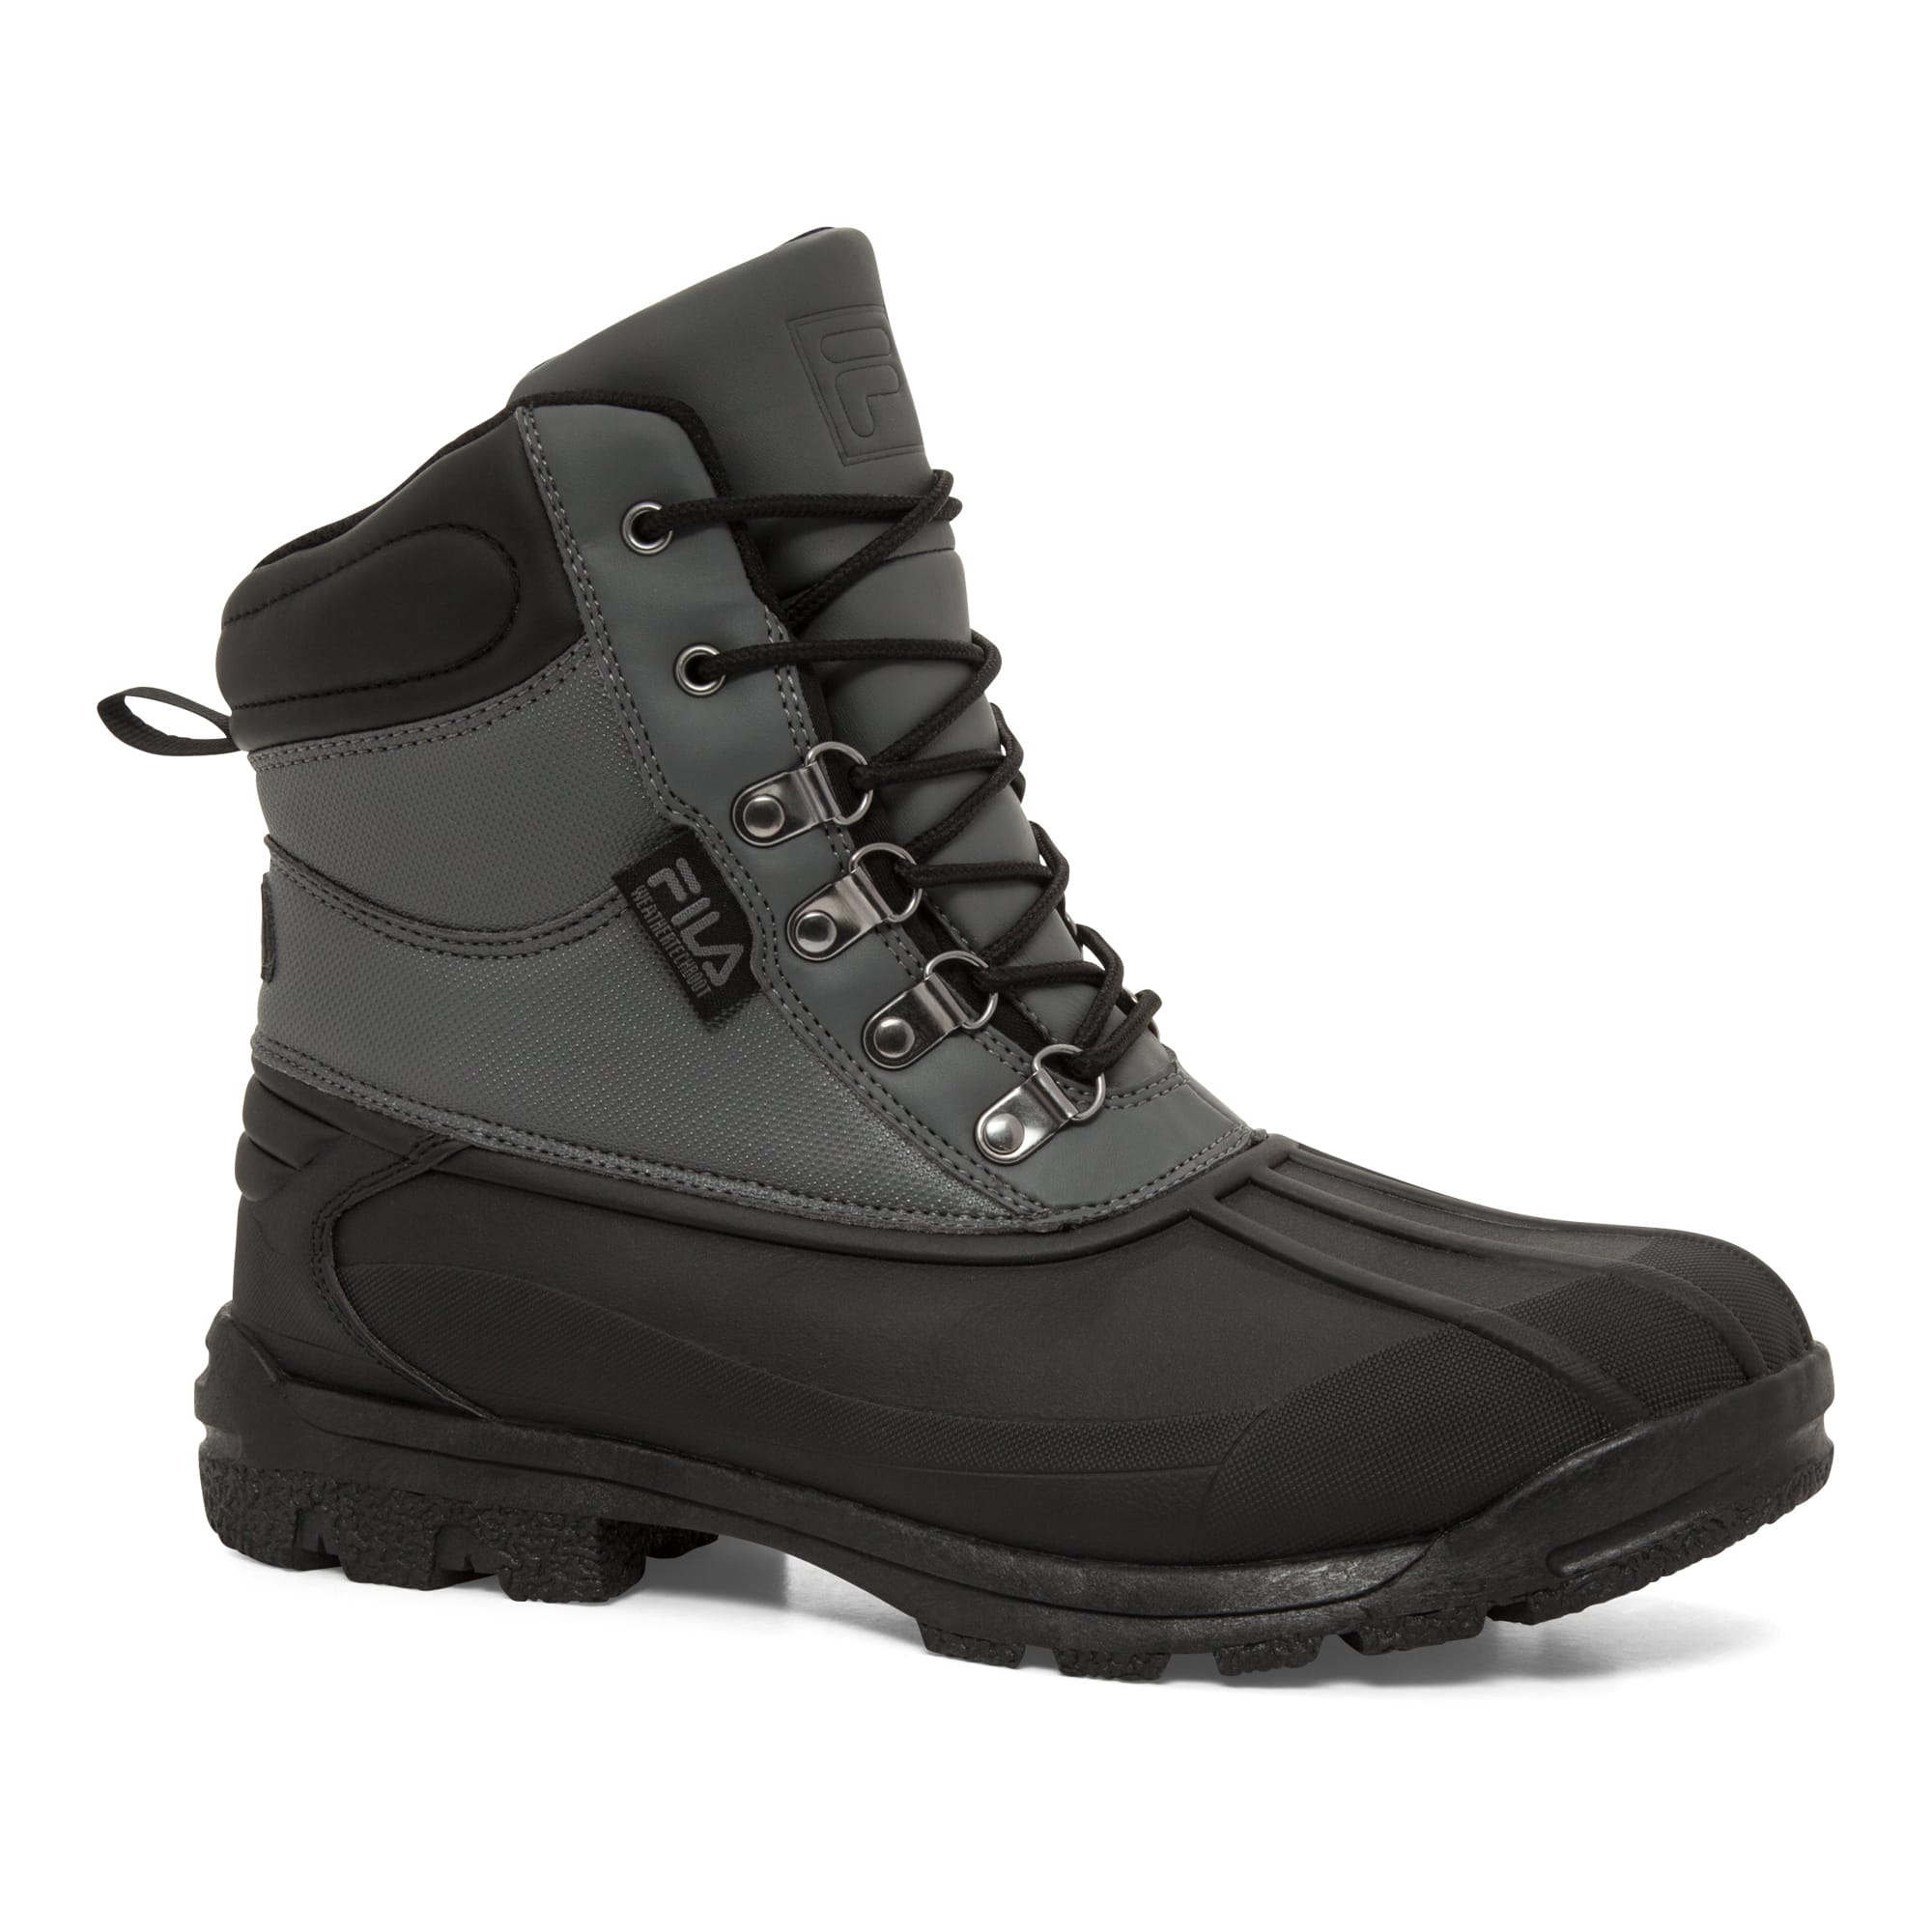 Fila Men's WeatherTech Extreme Waterproof Boot $20.99 + Free Shipping (eBay Daily Deal)